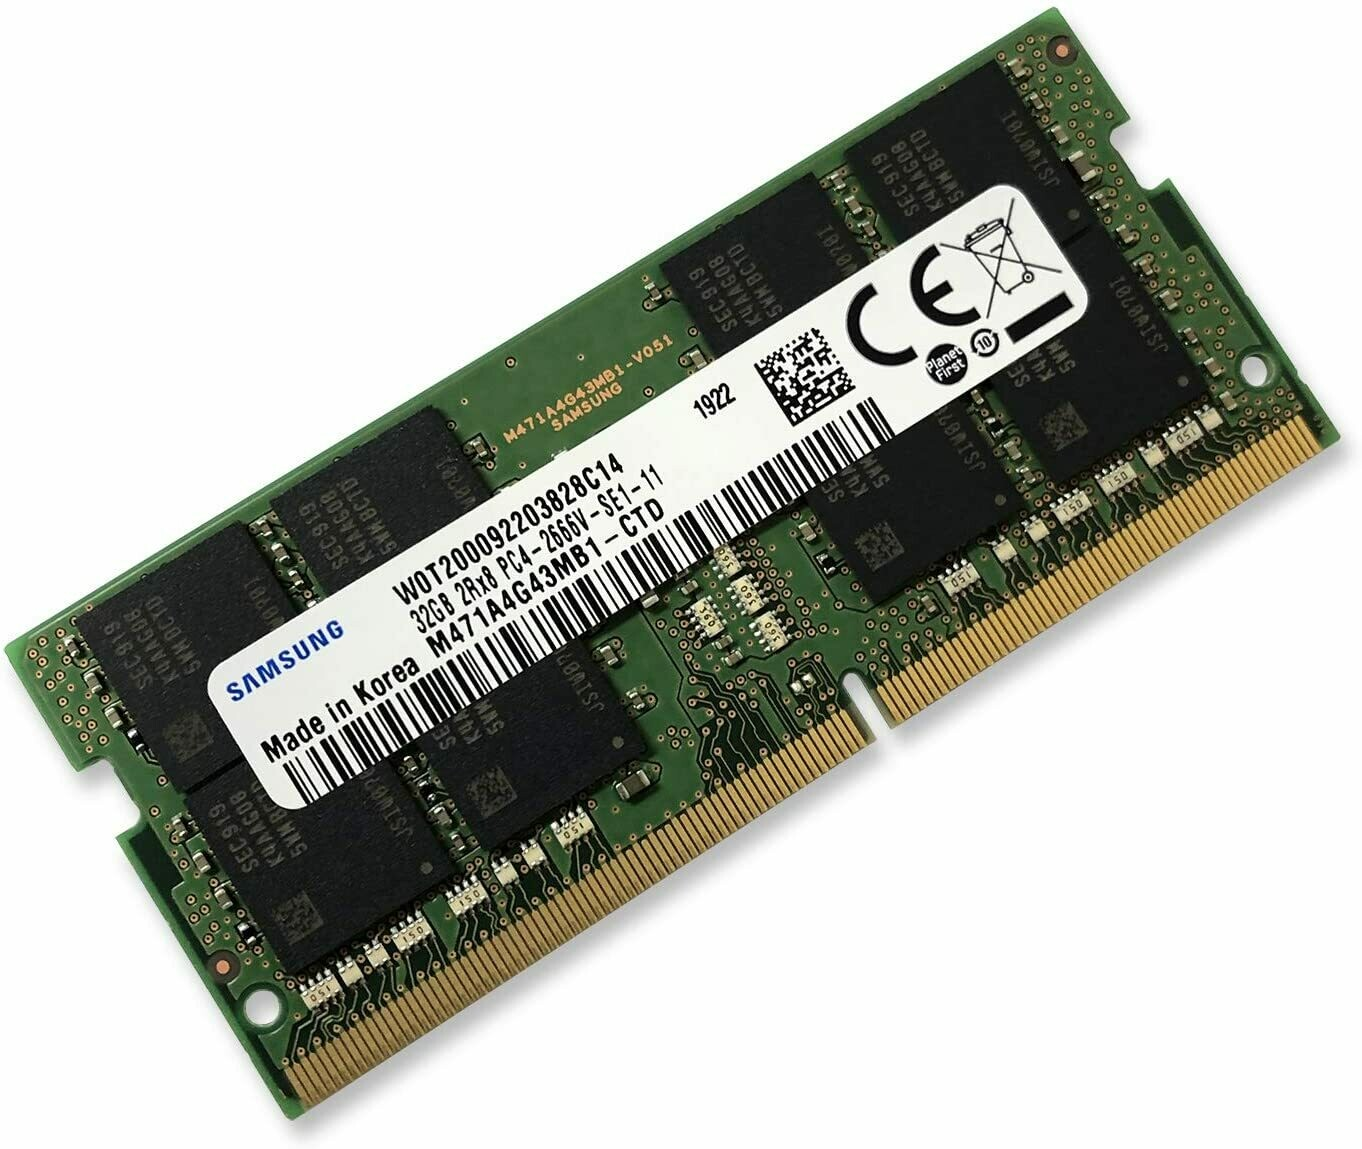 RAM INSTALLATION /ONSITE TECH